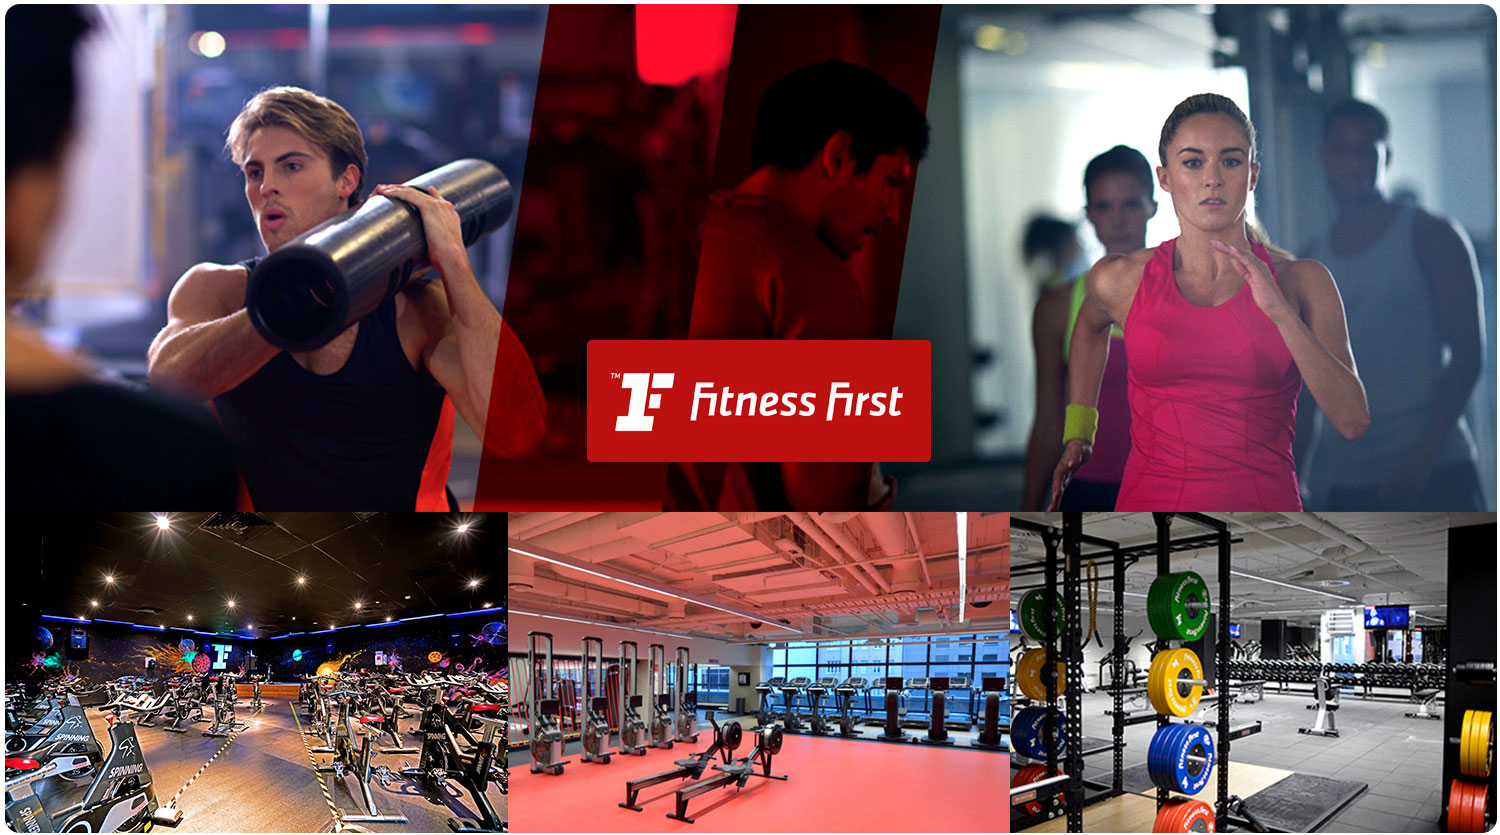 Start your Fitness Journey with Fitness First with only $9.95 for 1 week at Fitness First Deakin. Experience our first class gym and freestyle classes inc. Yoga, Pilates, Boxing, Zumba, Les Mills and more. Take the first step with Fitness First Deakin.